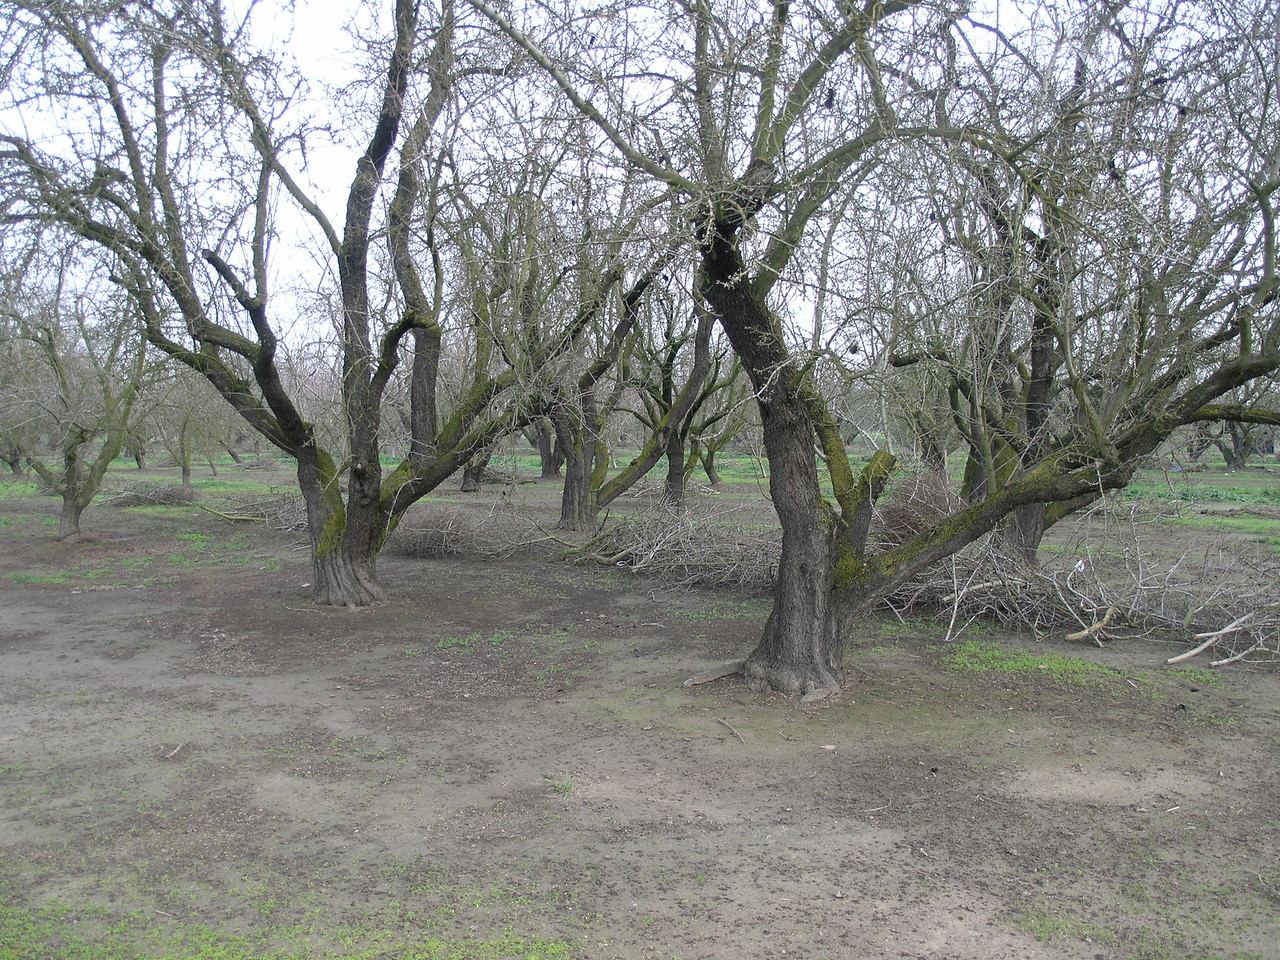 this is an old almond orchard whth prunings on the ground.  Many years ago almons were hardly pruned at all. Now they do enough pruning to continually renew the flowering spurs. This increases production.